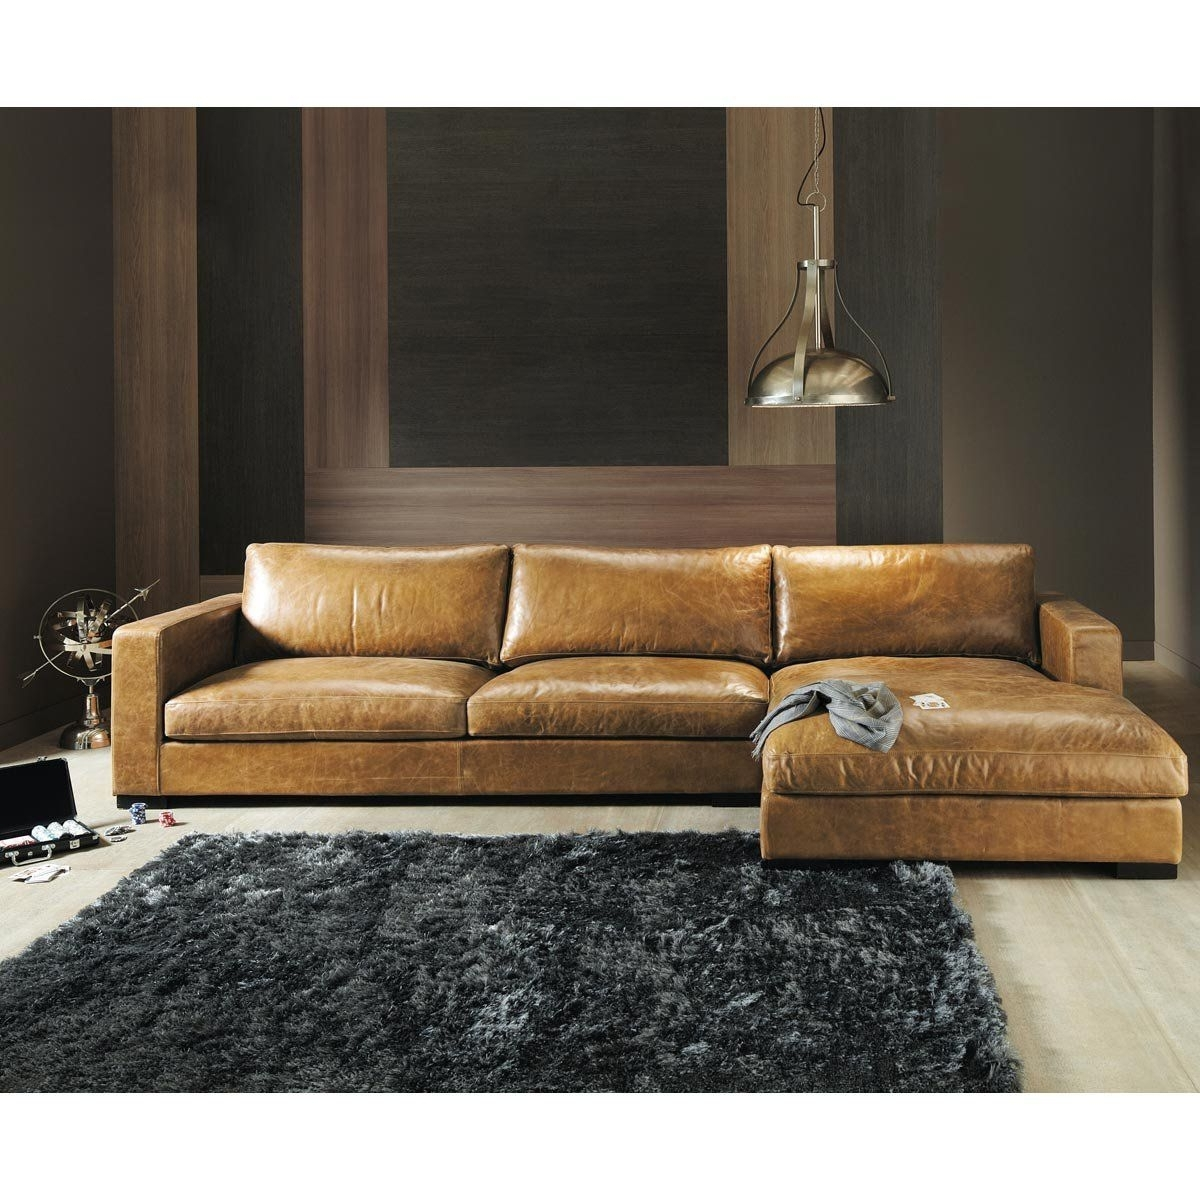 Camel Colored Sectional Sofas For Most Recent 5 Seater Vintage Leather Corner Sofa, Camel (View 5 of 20)